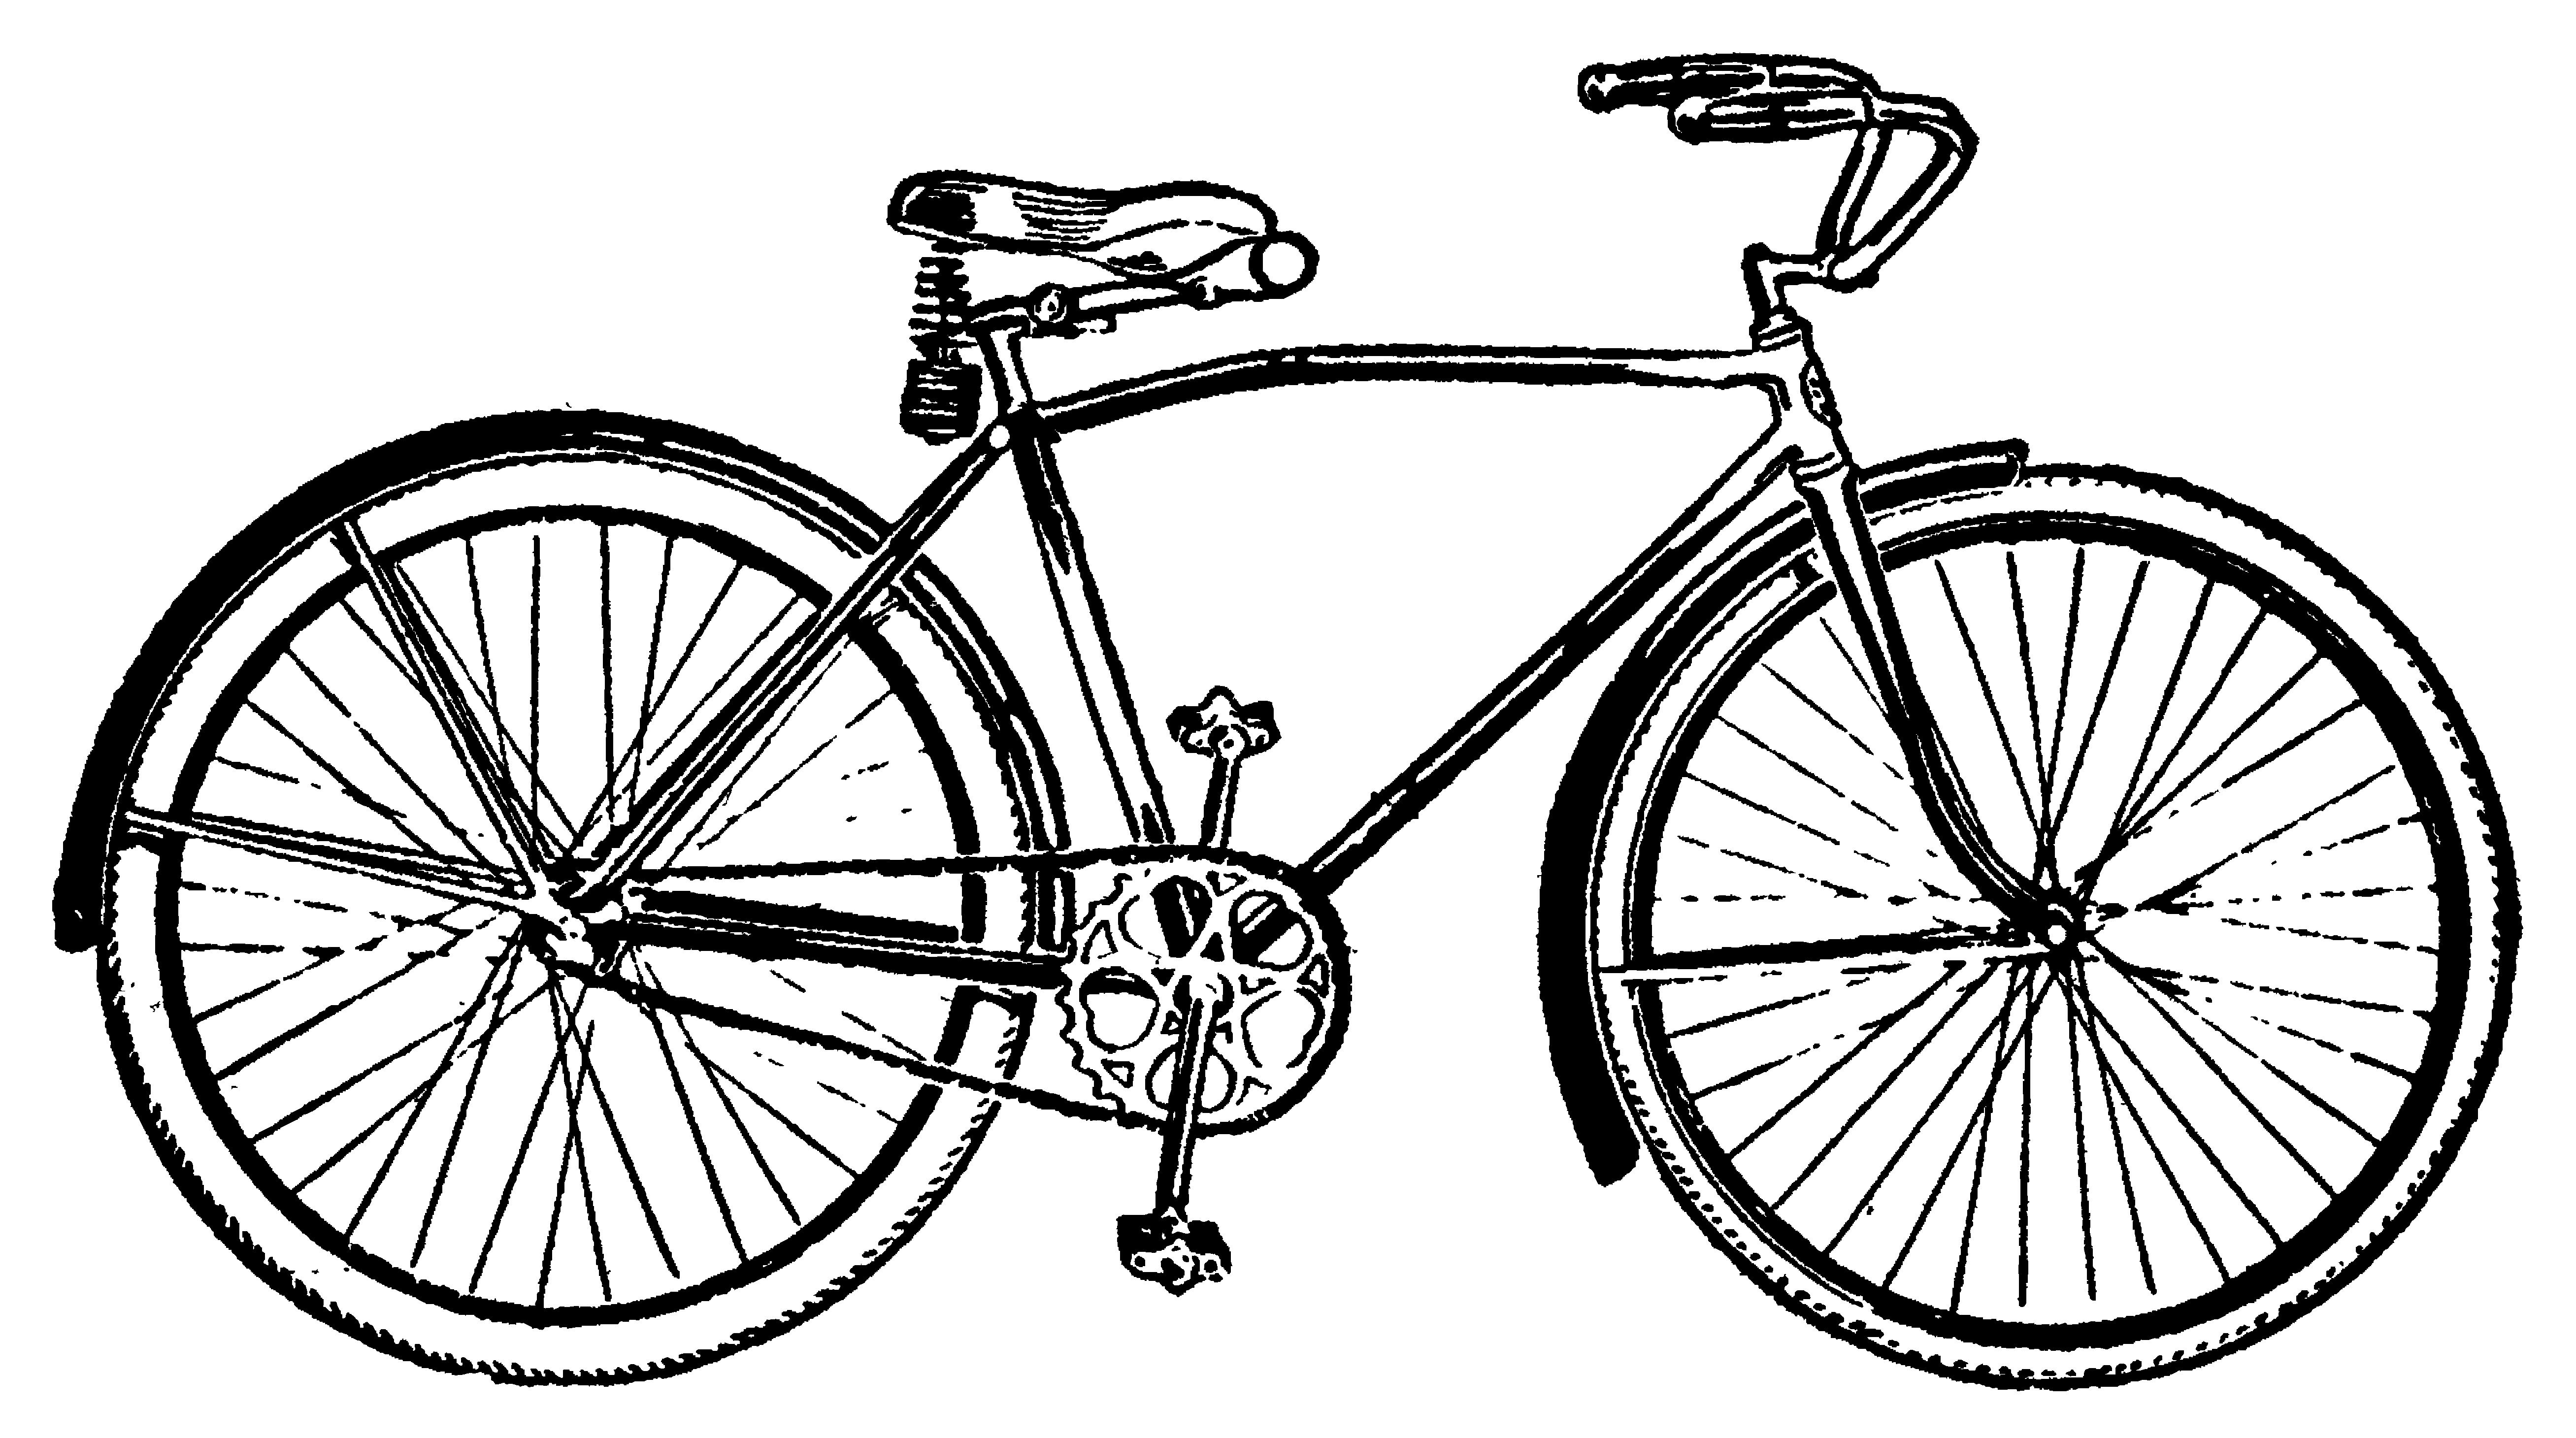 Vintage bicycle decal images. Biking clipart antique